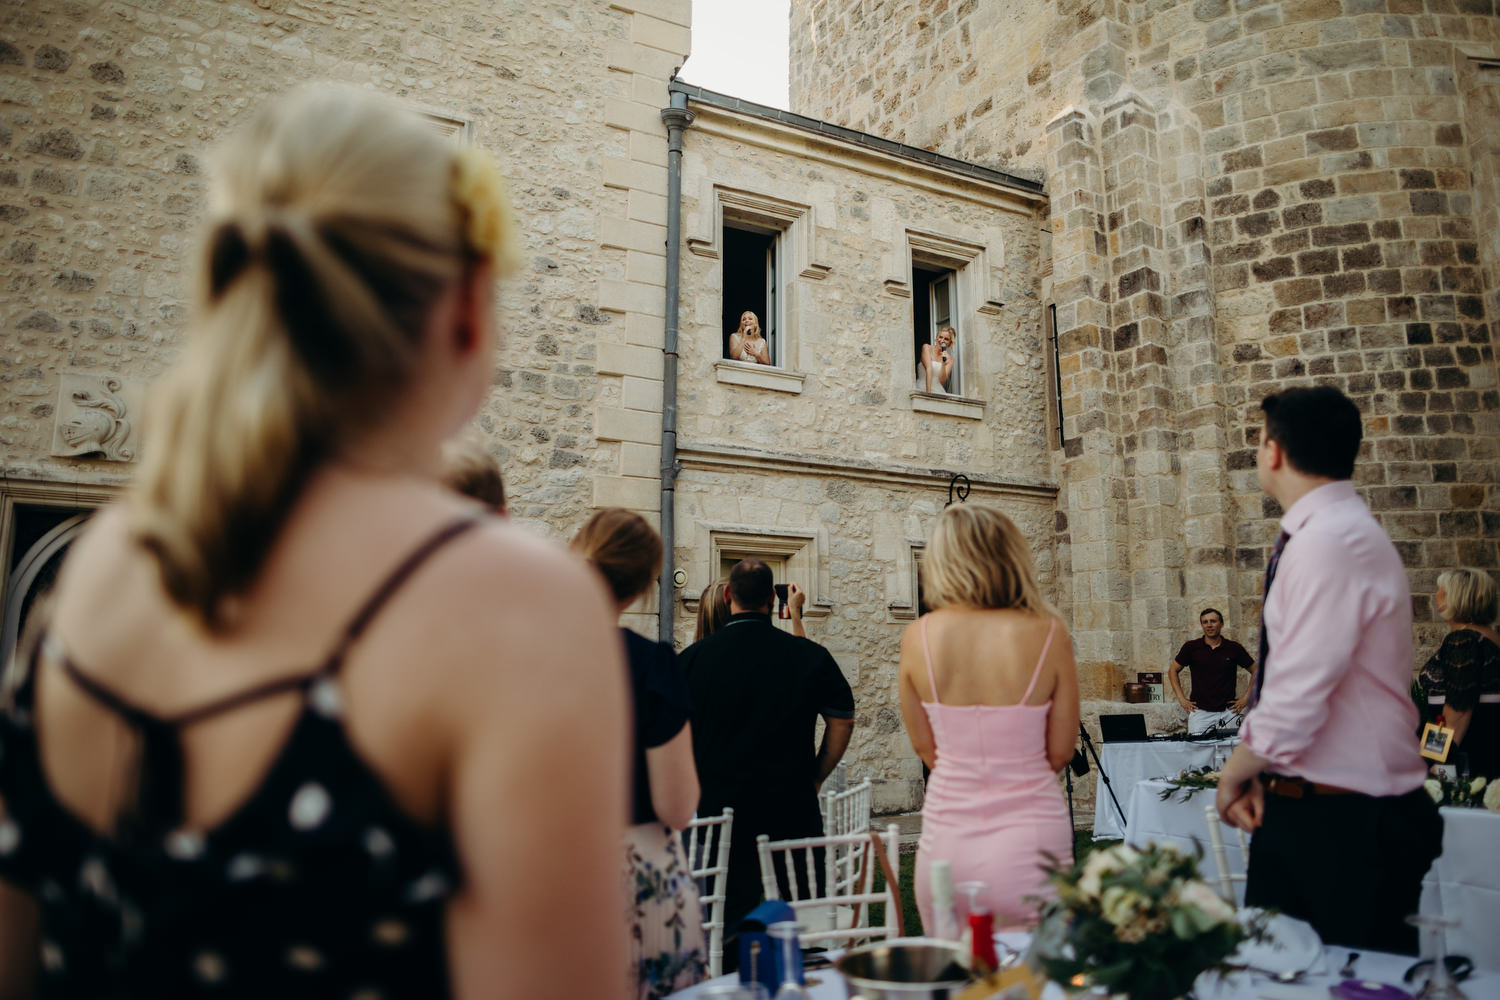 Brides perform song from windows of chateau